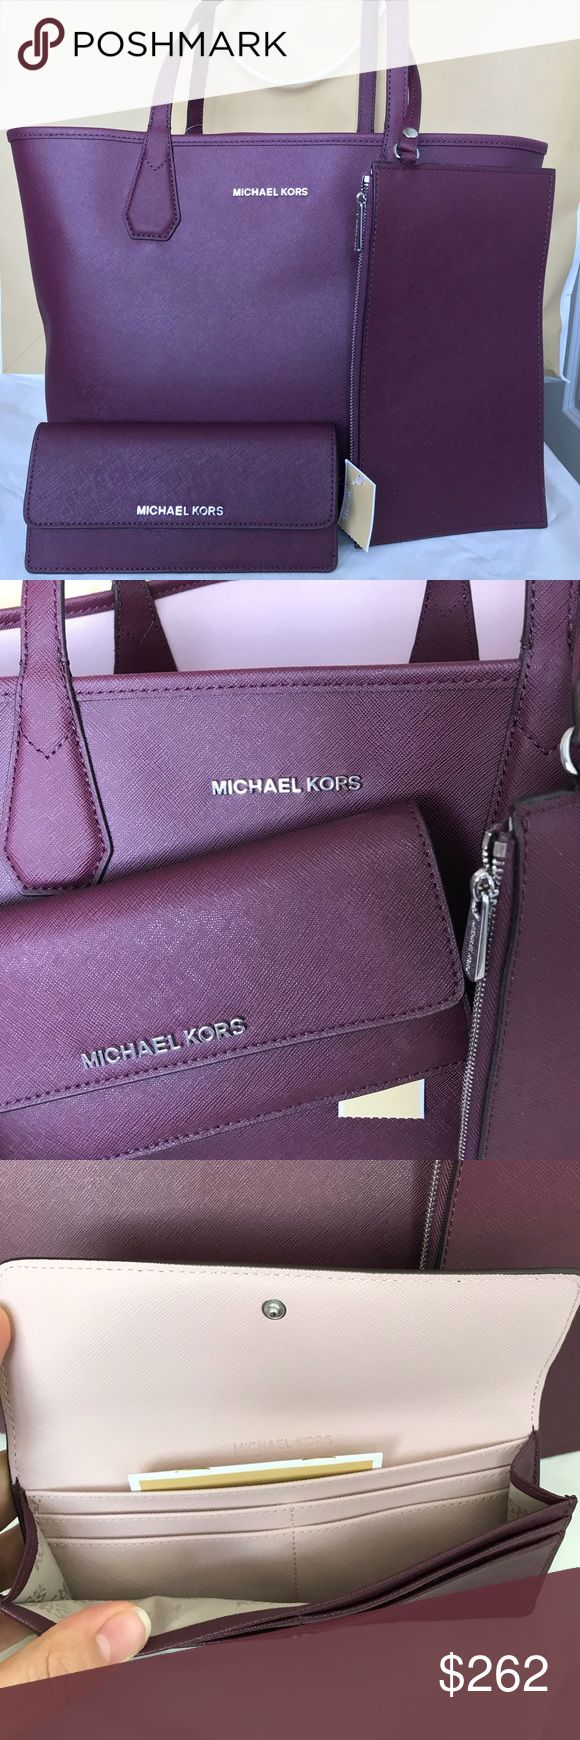 Michael Kors Reversible Tote and Wallet Set Both Brand new with tag!! %100 Authentic. Bag is reversible, you can use both sides, has a removable pouchWallet is pretty roomy and useful for everyday!!Gift wrap and shopping bag is availableColors burgundy and very light pink! Michael Kors Bags Shoulder Bags